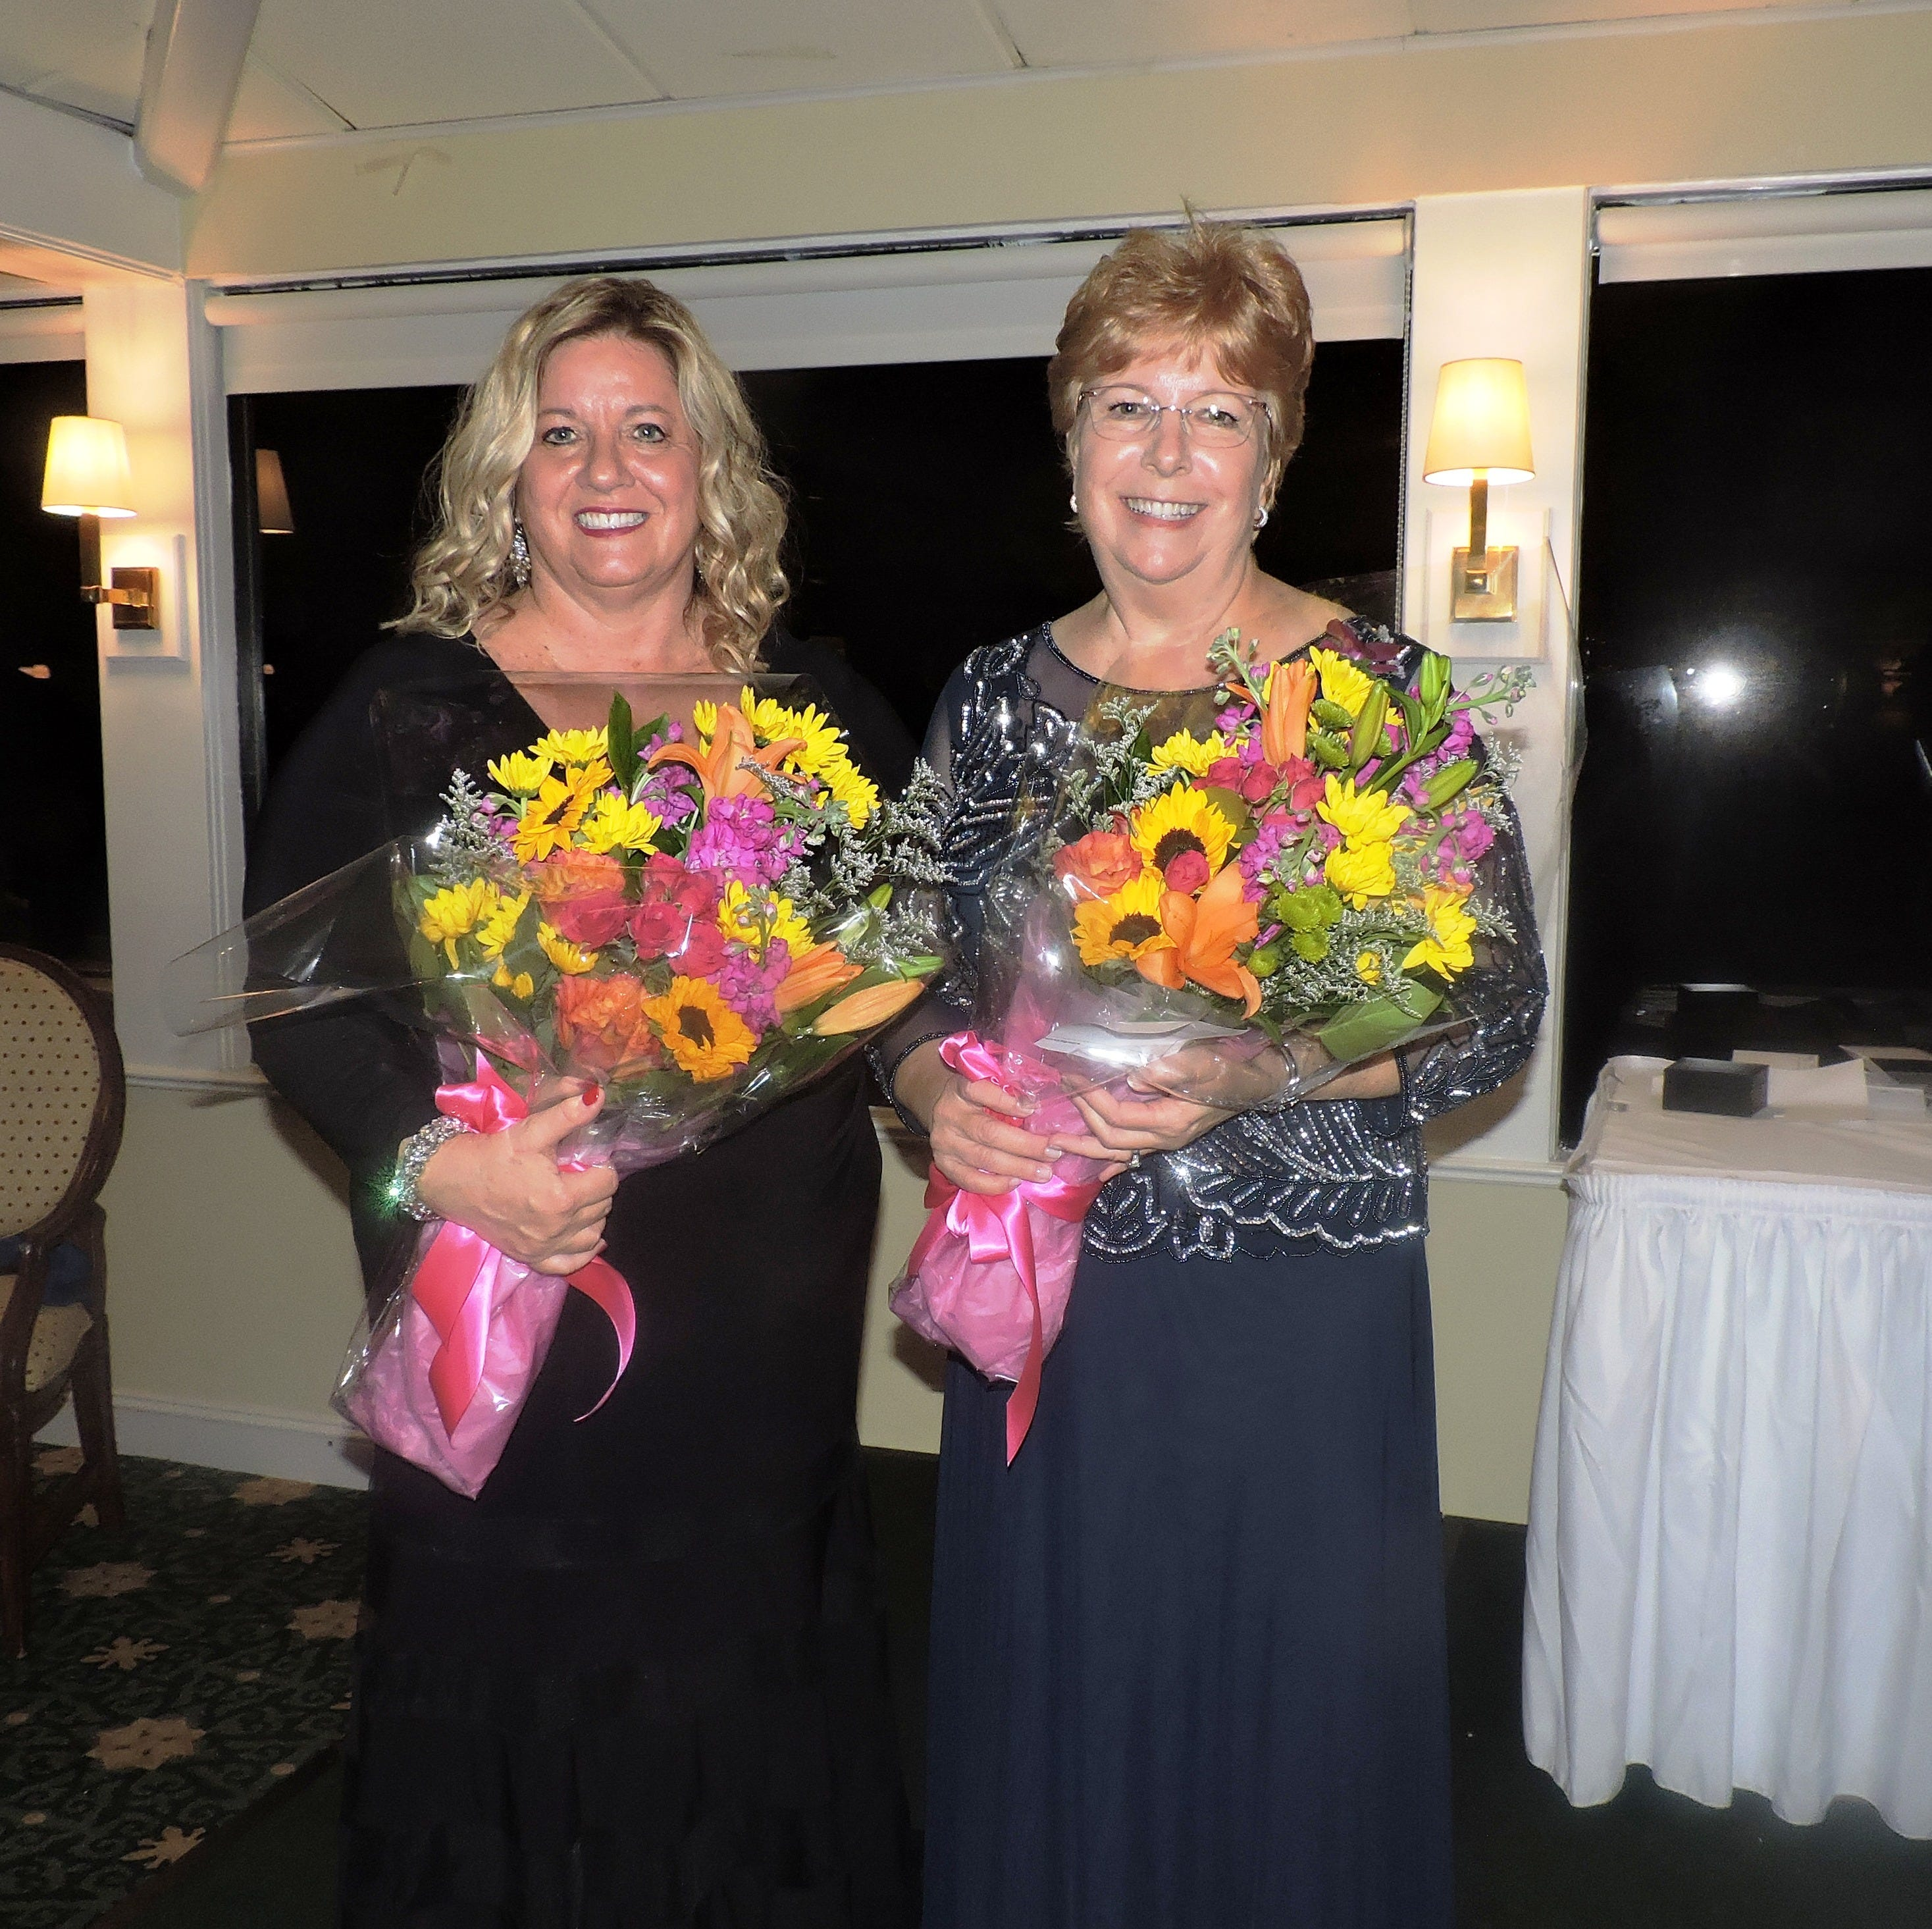 Stuart Soroptimist celebrate 2019 Women of Distinction